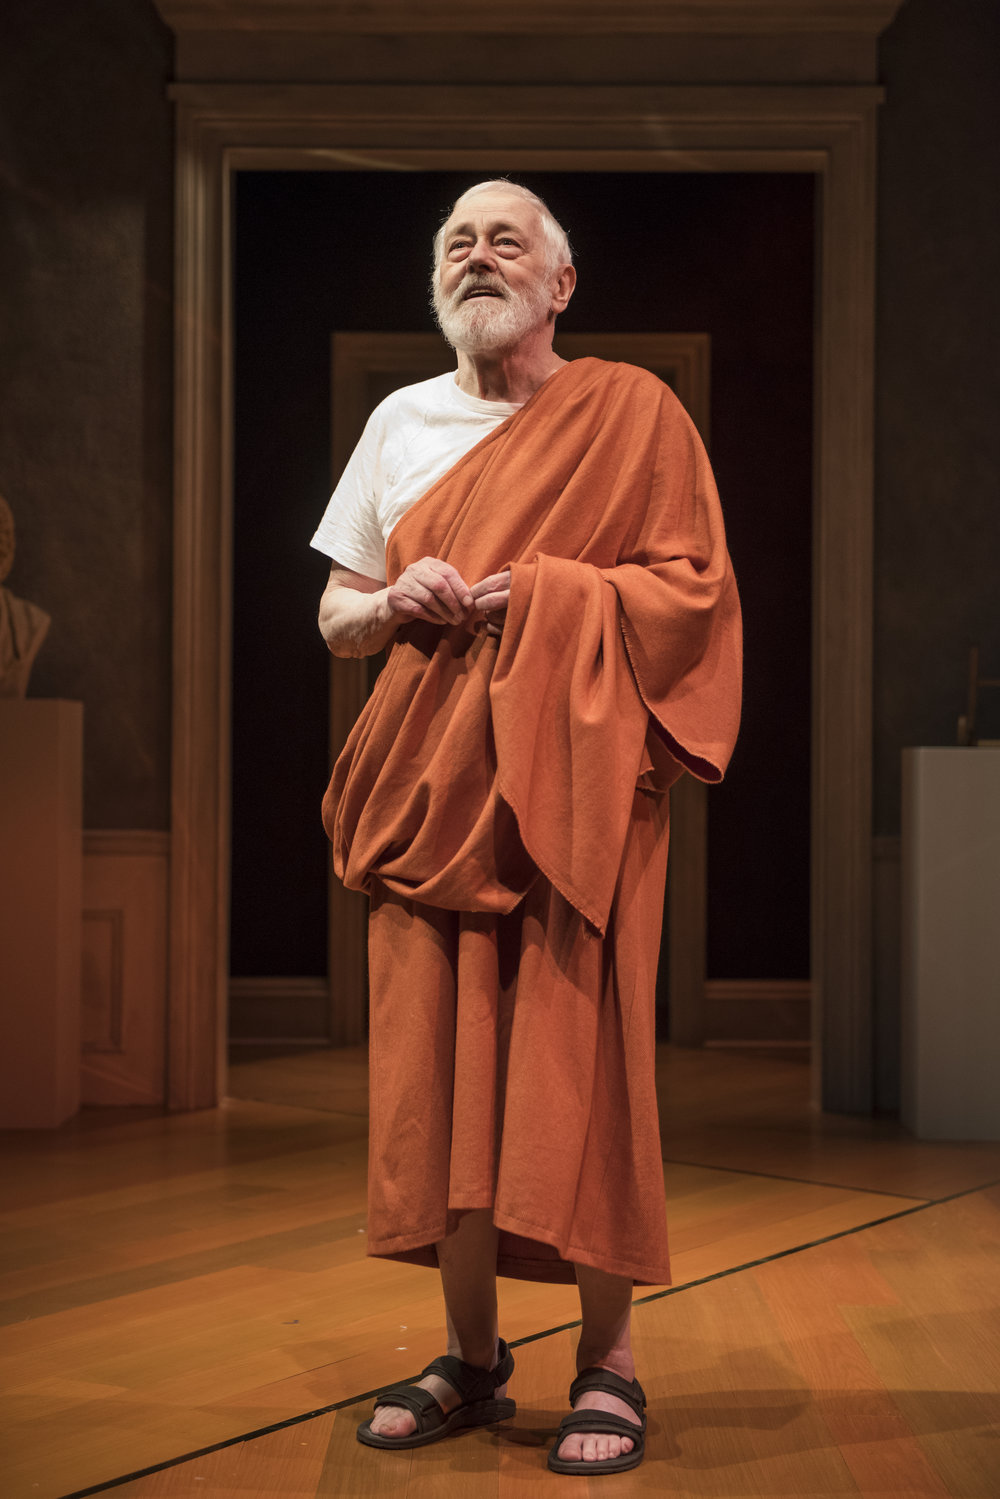 Pictured ensemble member John Mahoney (Homer) in Steppenwolf's Chicago premiere production of The Rembrandt. Photo by Michael Brosilow